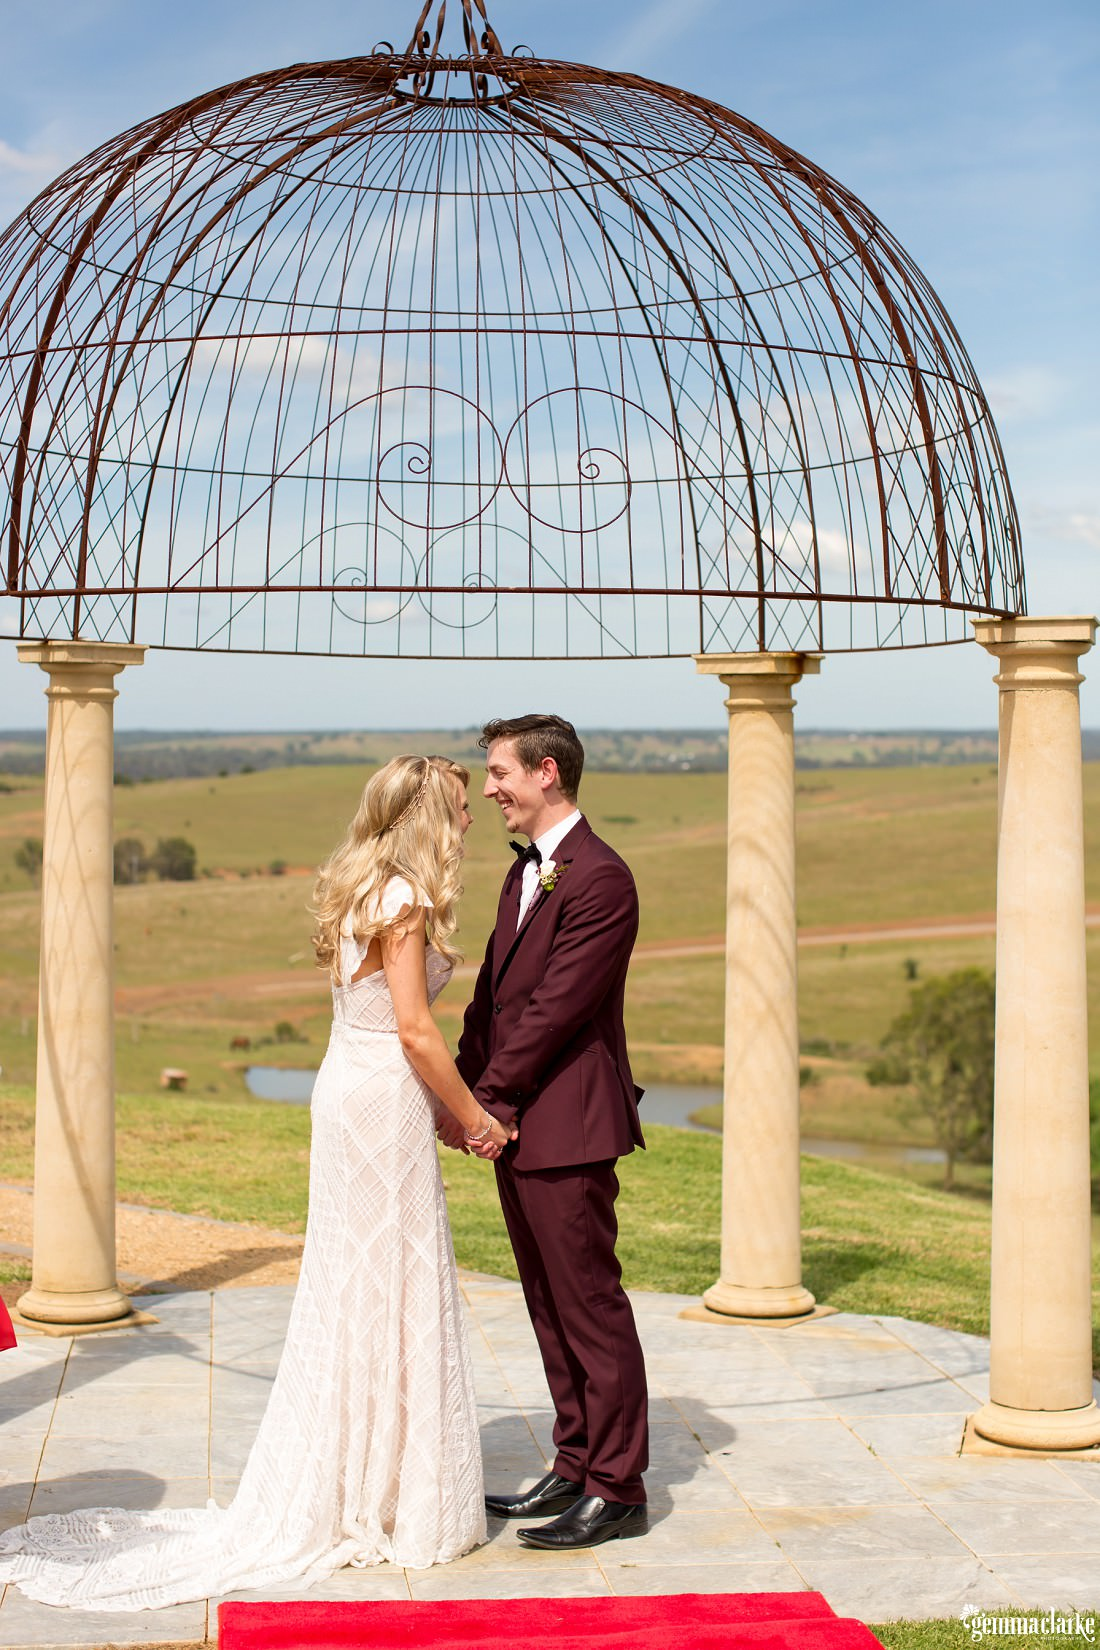 A bride and groom holding hands and smiling at each other under a steel arbour after their ceremony at their Sheldonbrook wedding